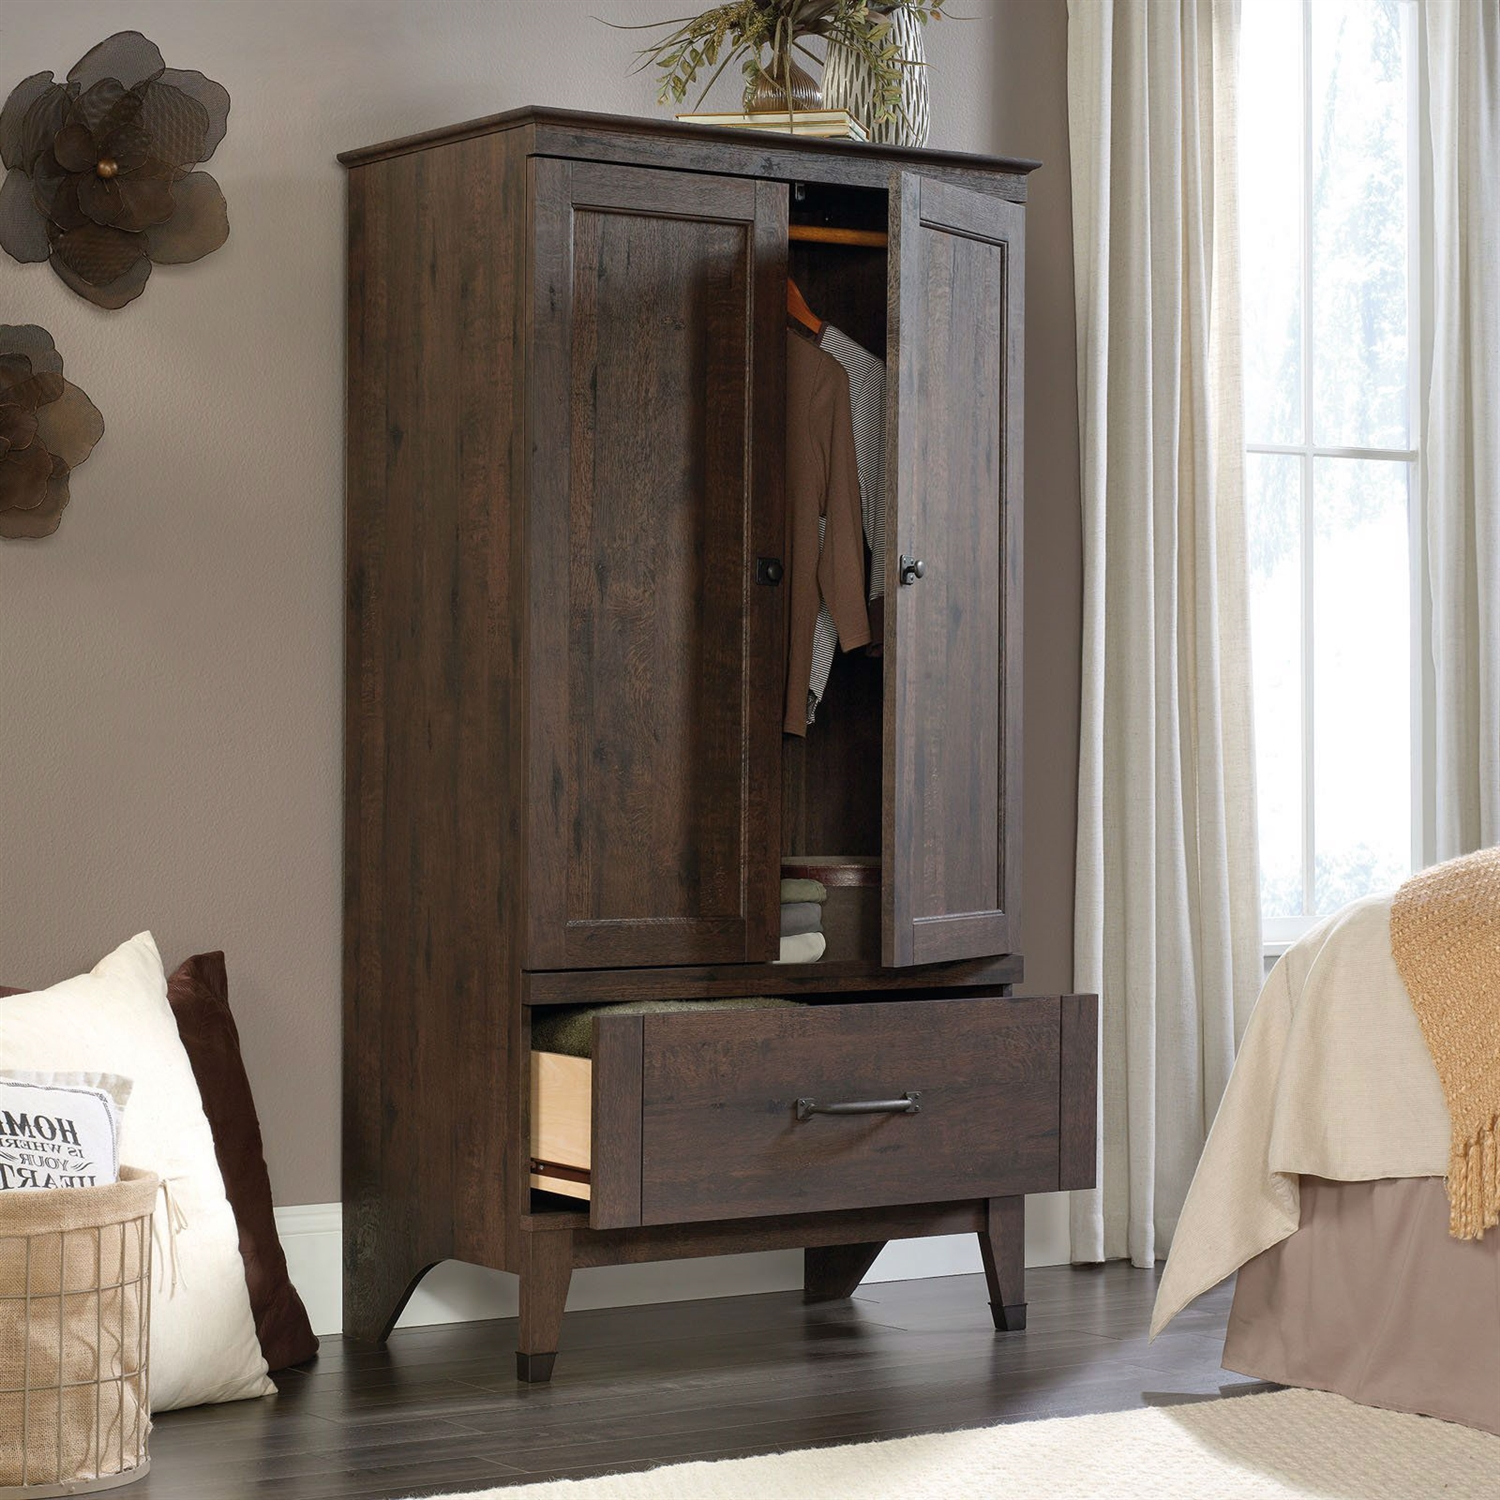 Bedroom Storage Armoire Wardrobe Cabinet in Dark Brown Oak Finish